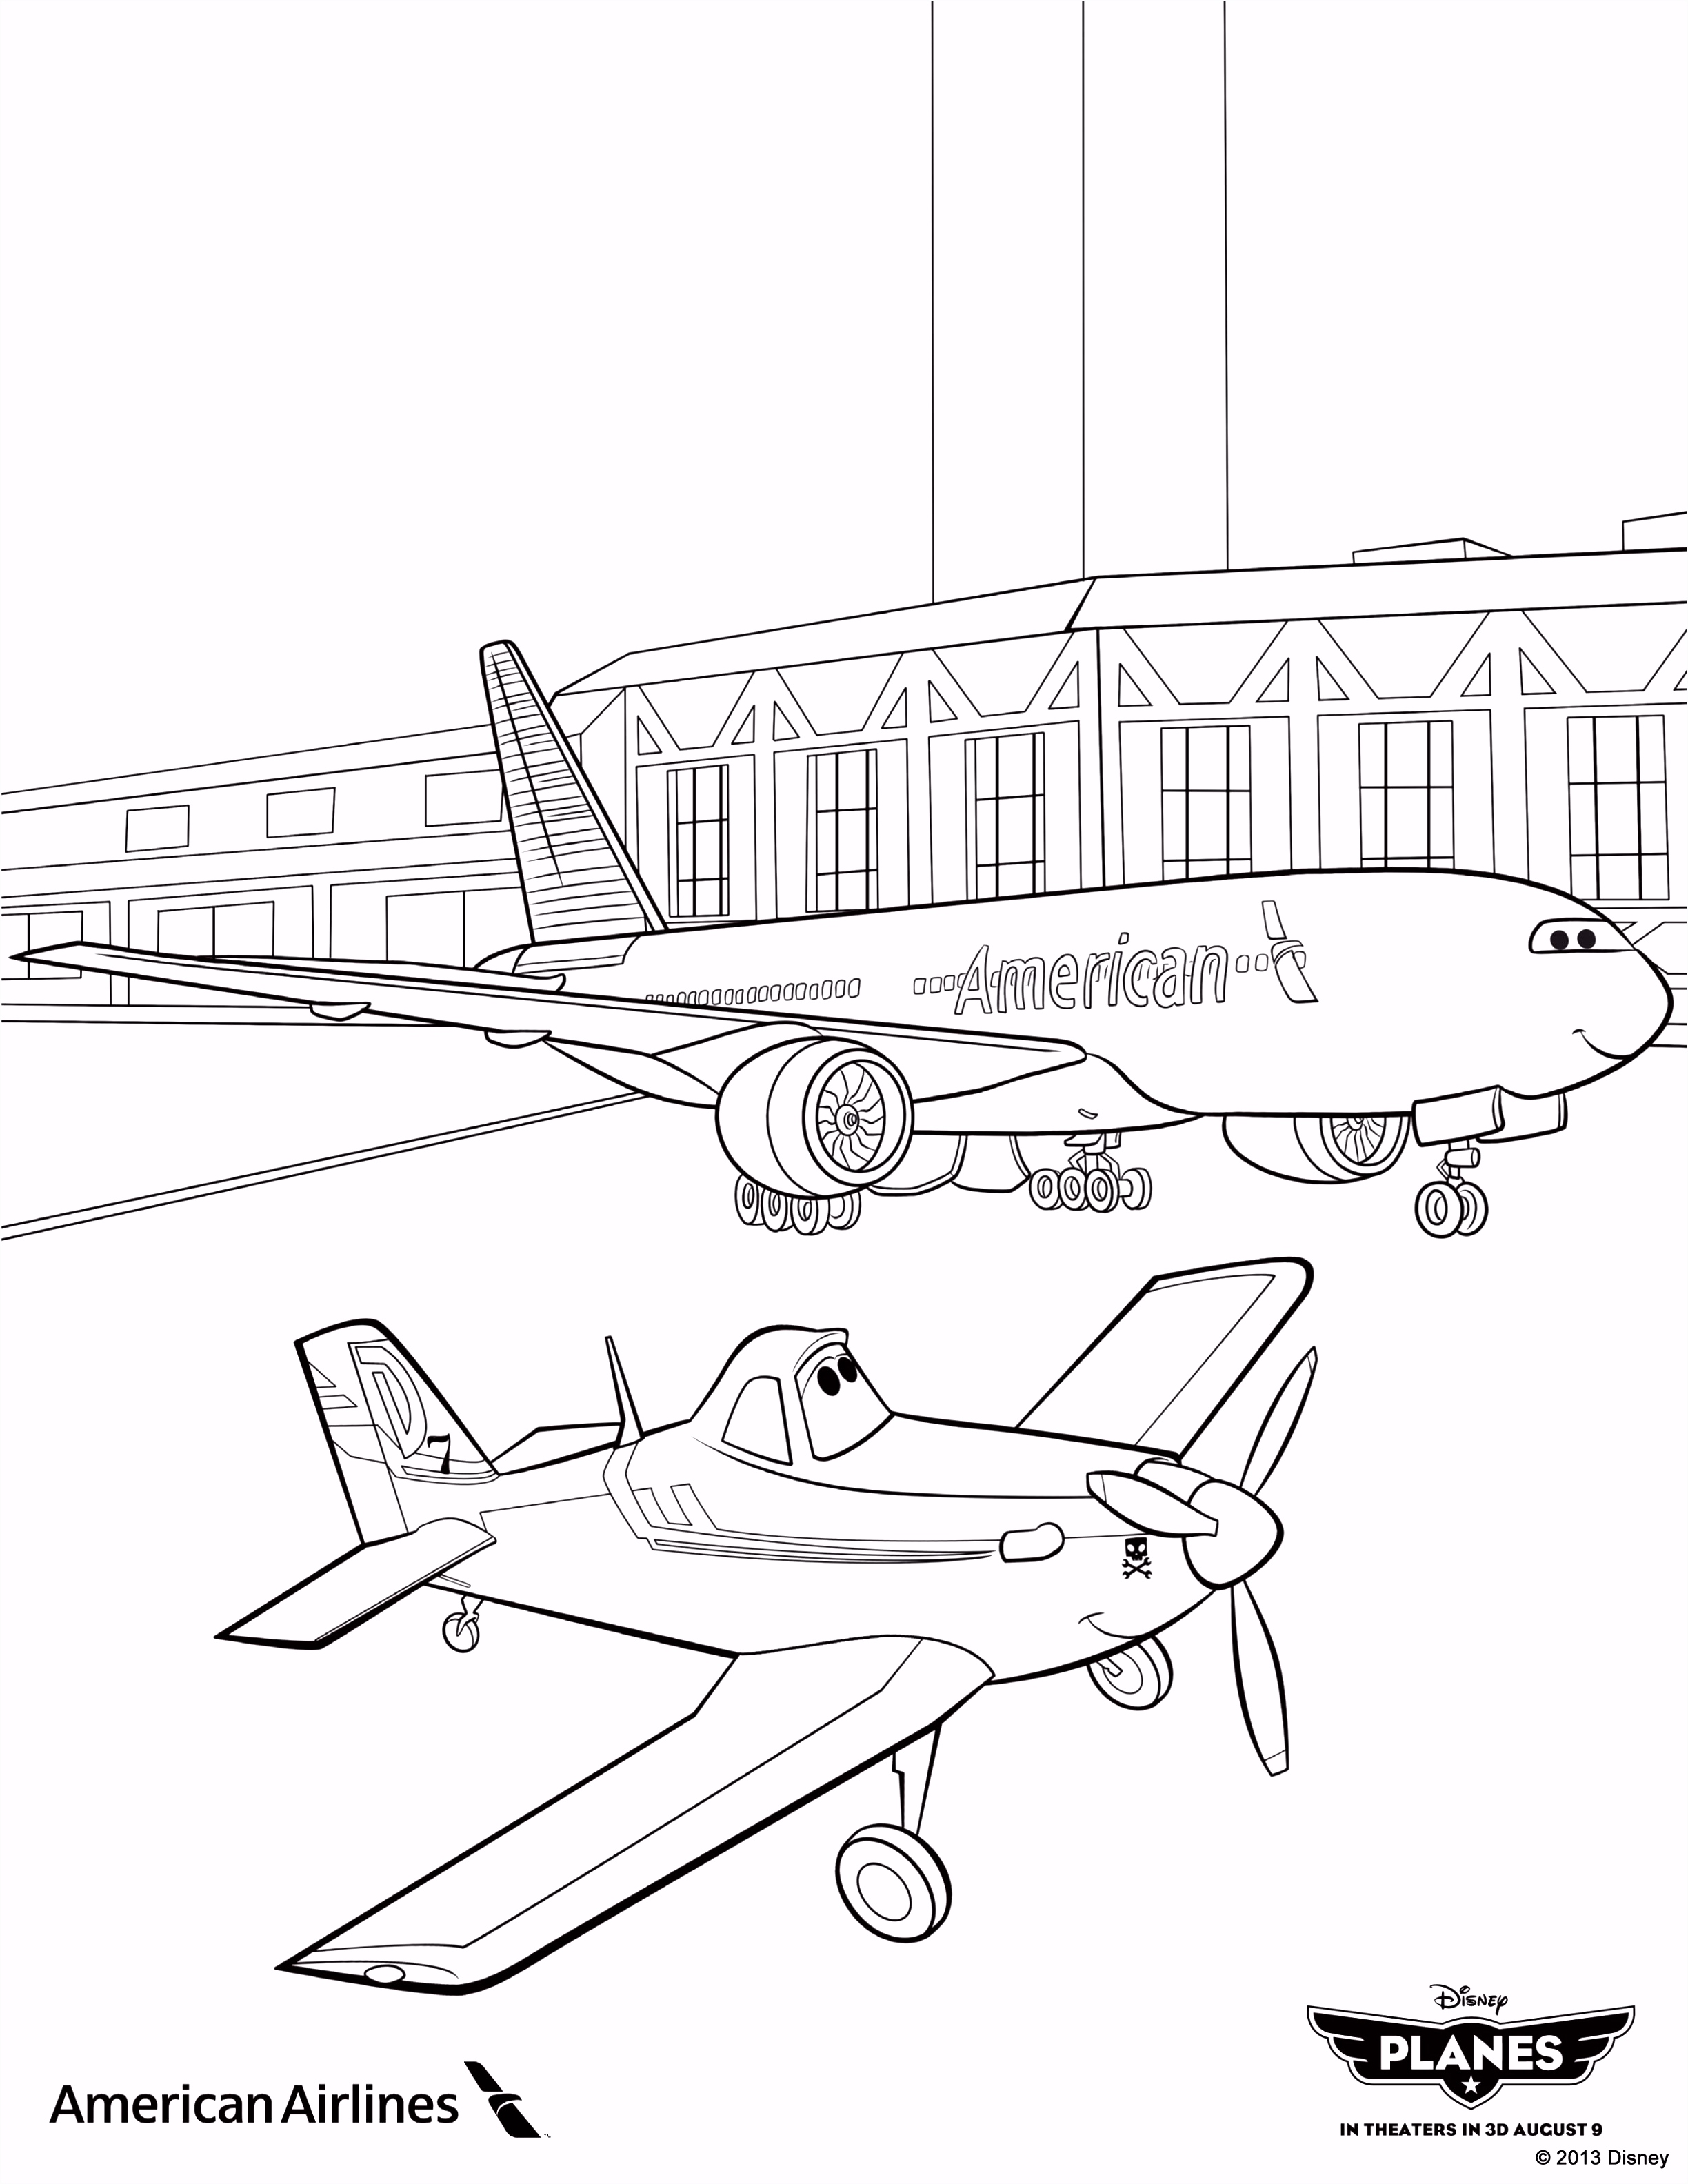 "Planes"" coloring sheet from American Airlines"